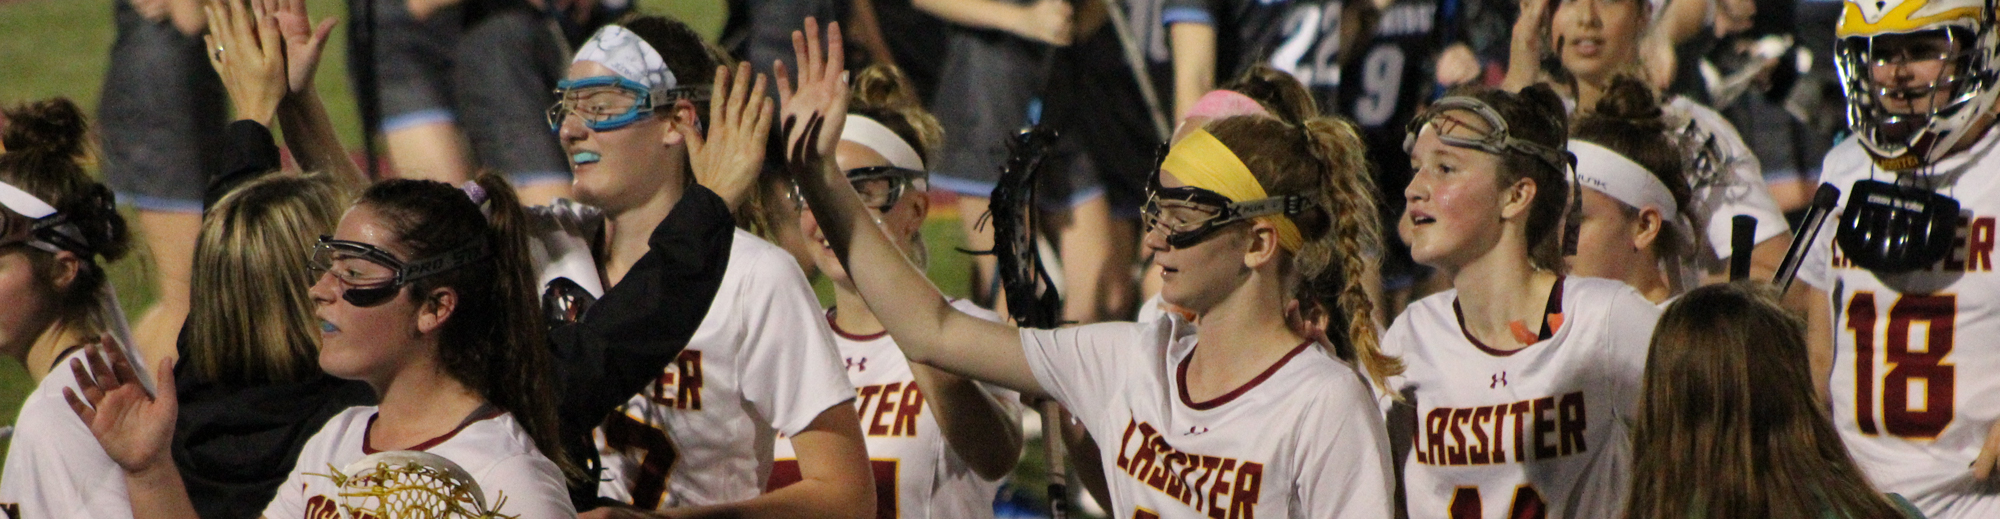 Girls Lacrosse team high fiving each other at a game